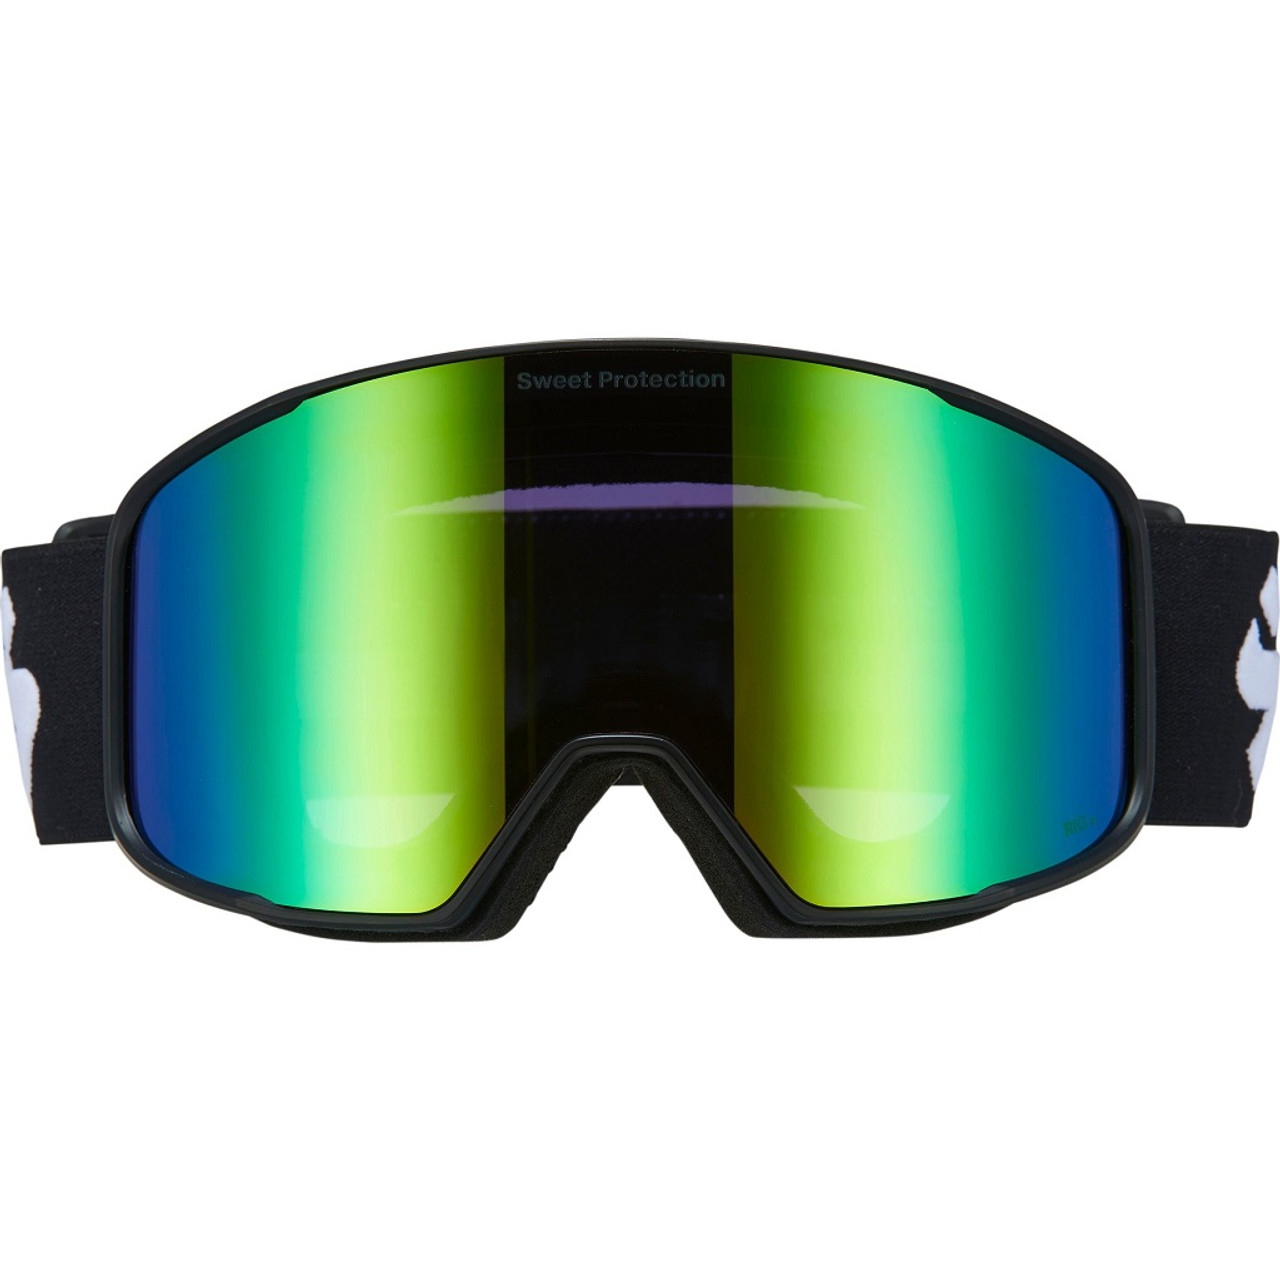 RIG Reflect Emerald - Sweet Protection Boondock Lenses